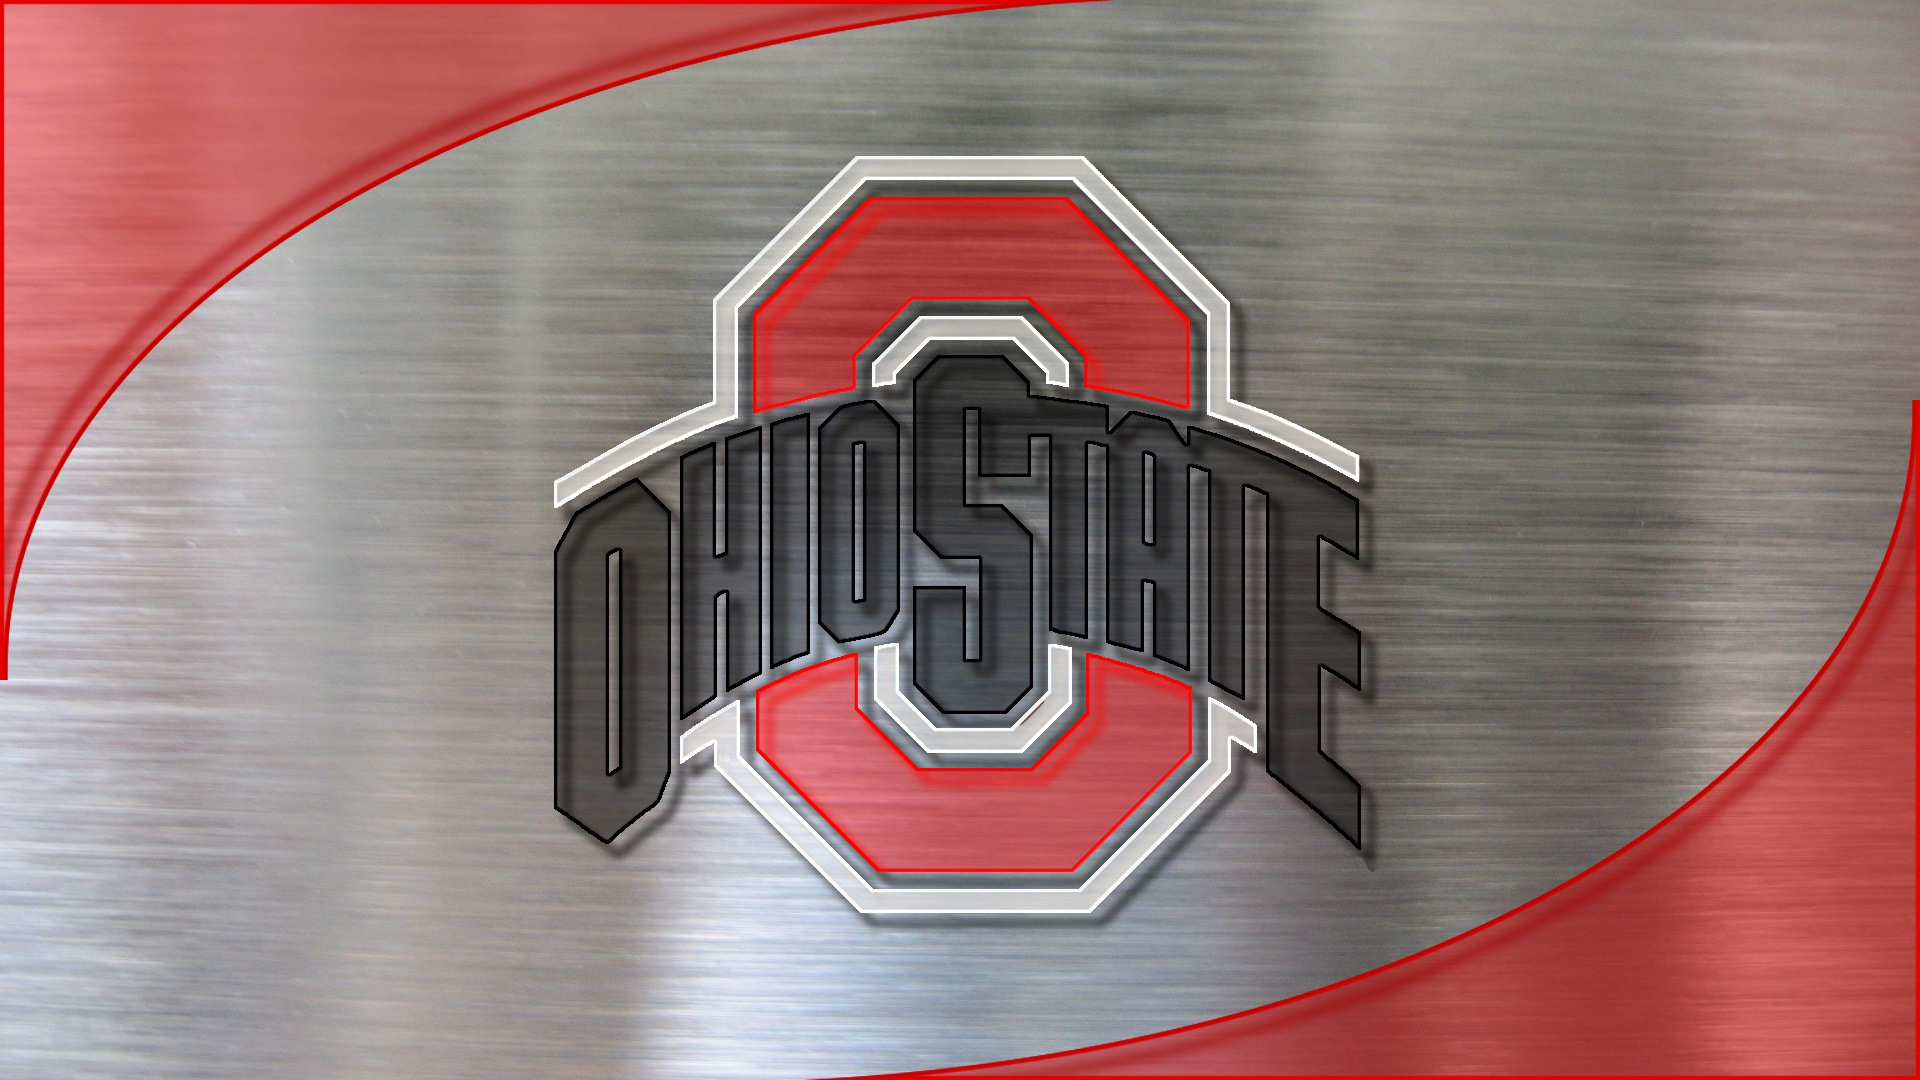 OSU Wallpaper 451   Ohio State Football Wallpaper 33908985 1920x1080